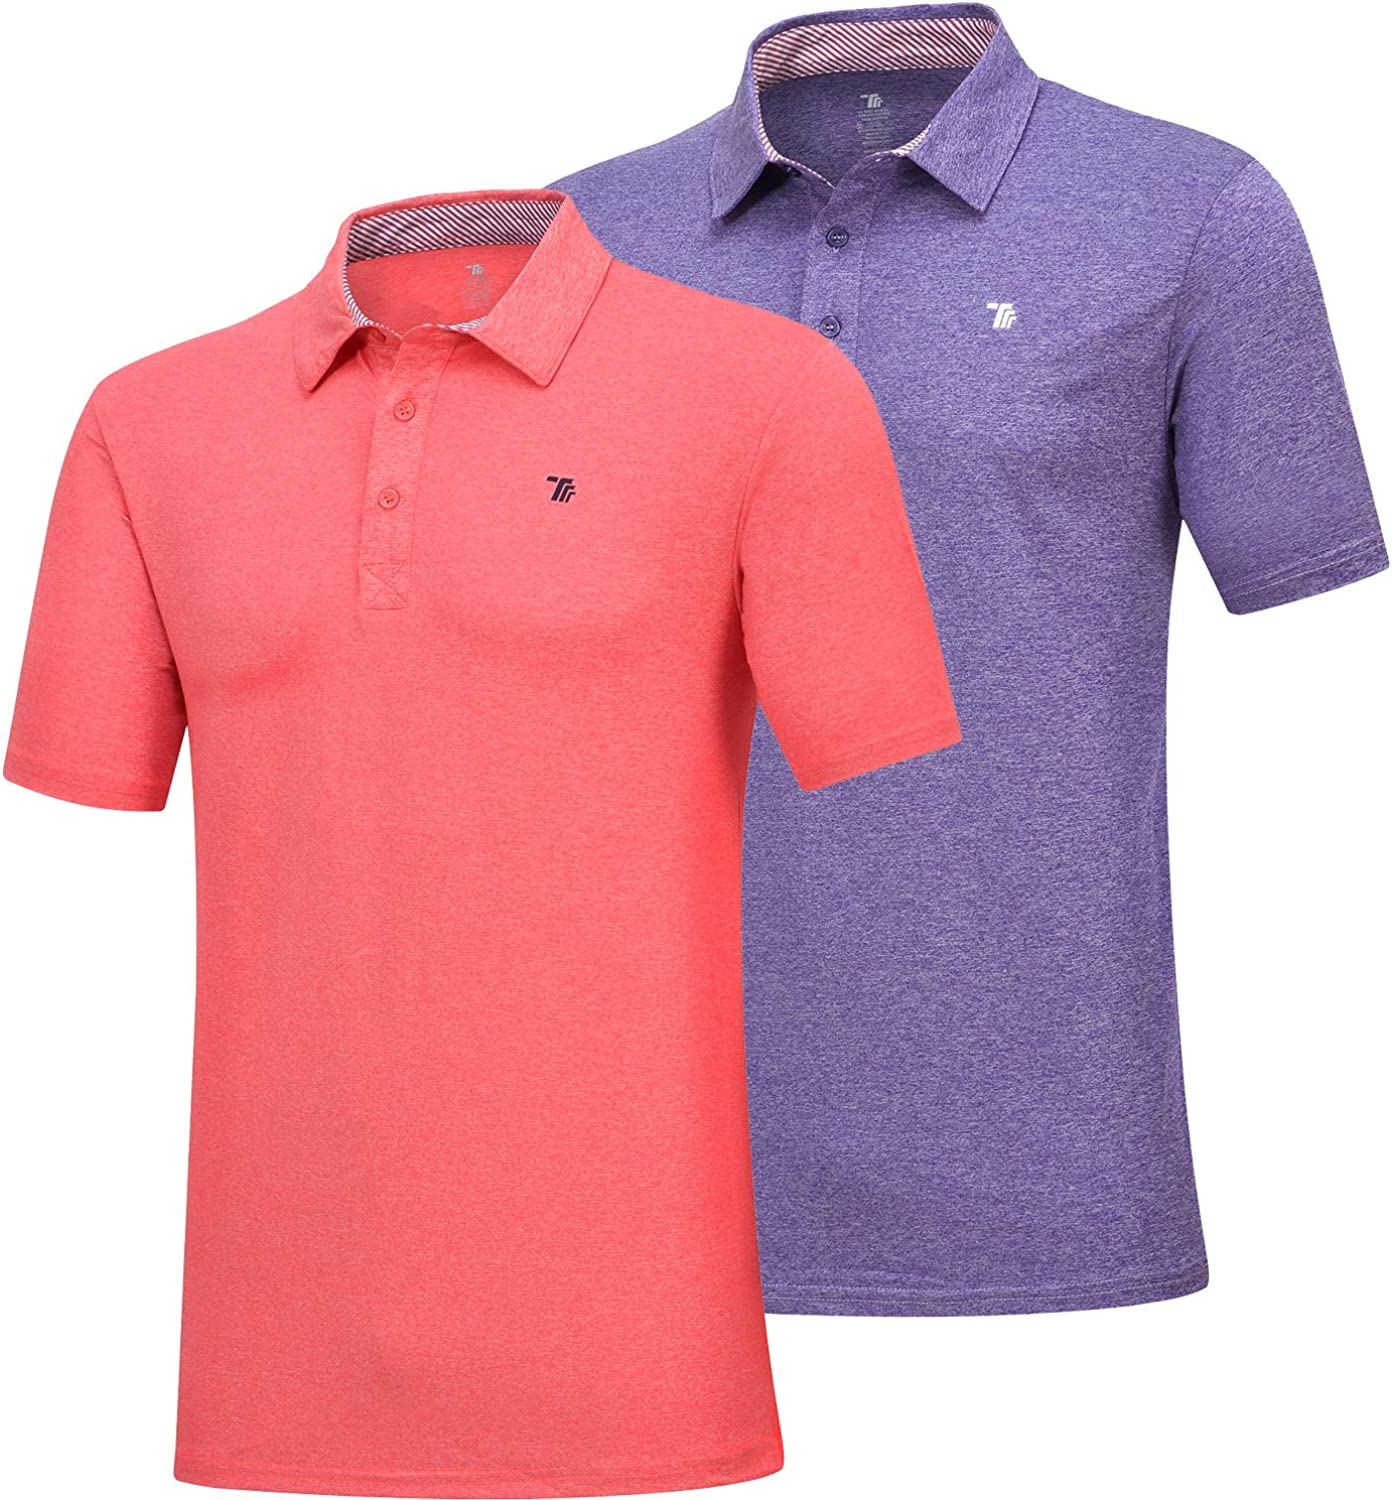 JINSHI Men's Athletic Shirts Sports Polo T-Shirts Short Sleeve Classic Golf Polo Shirt: Clothing